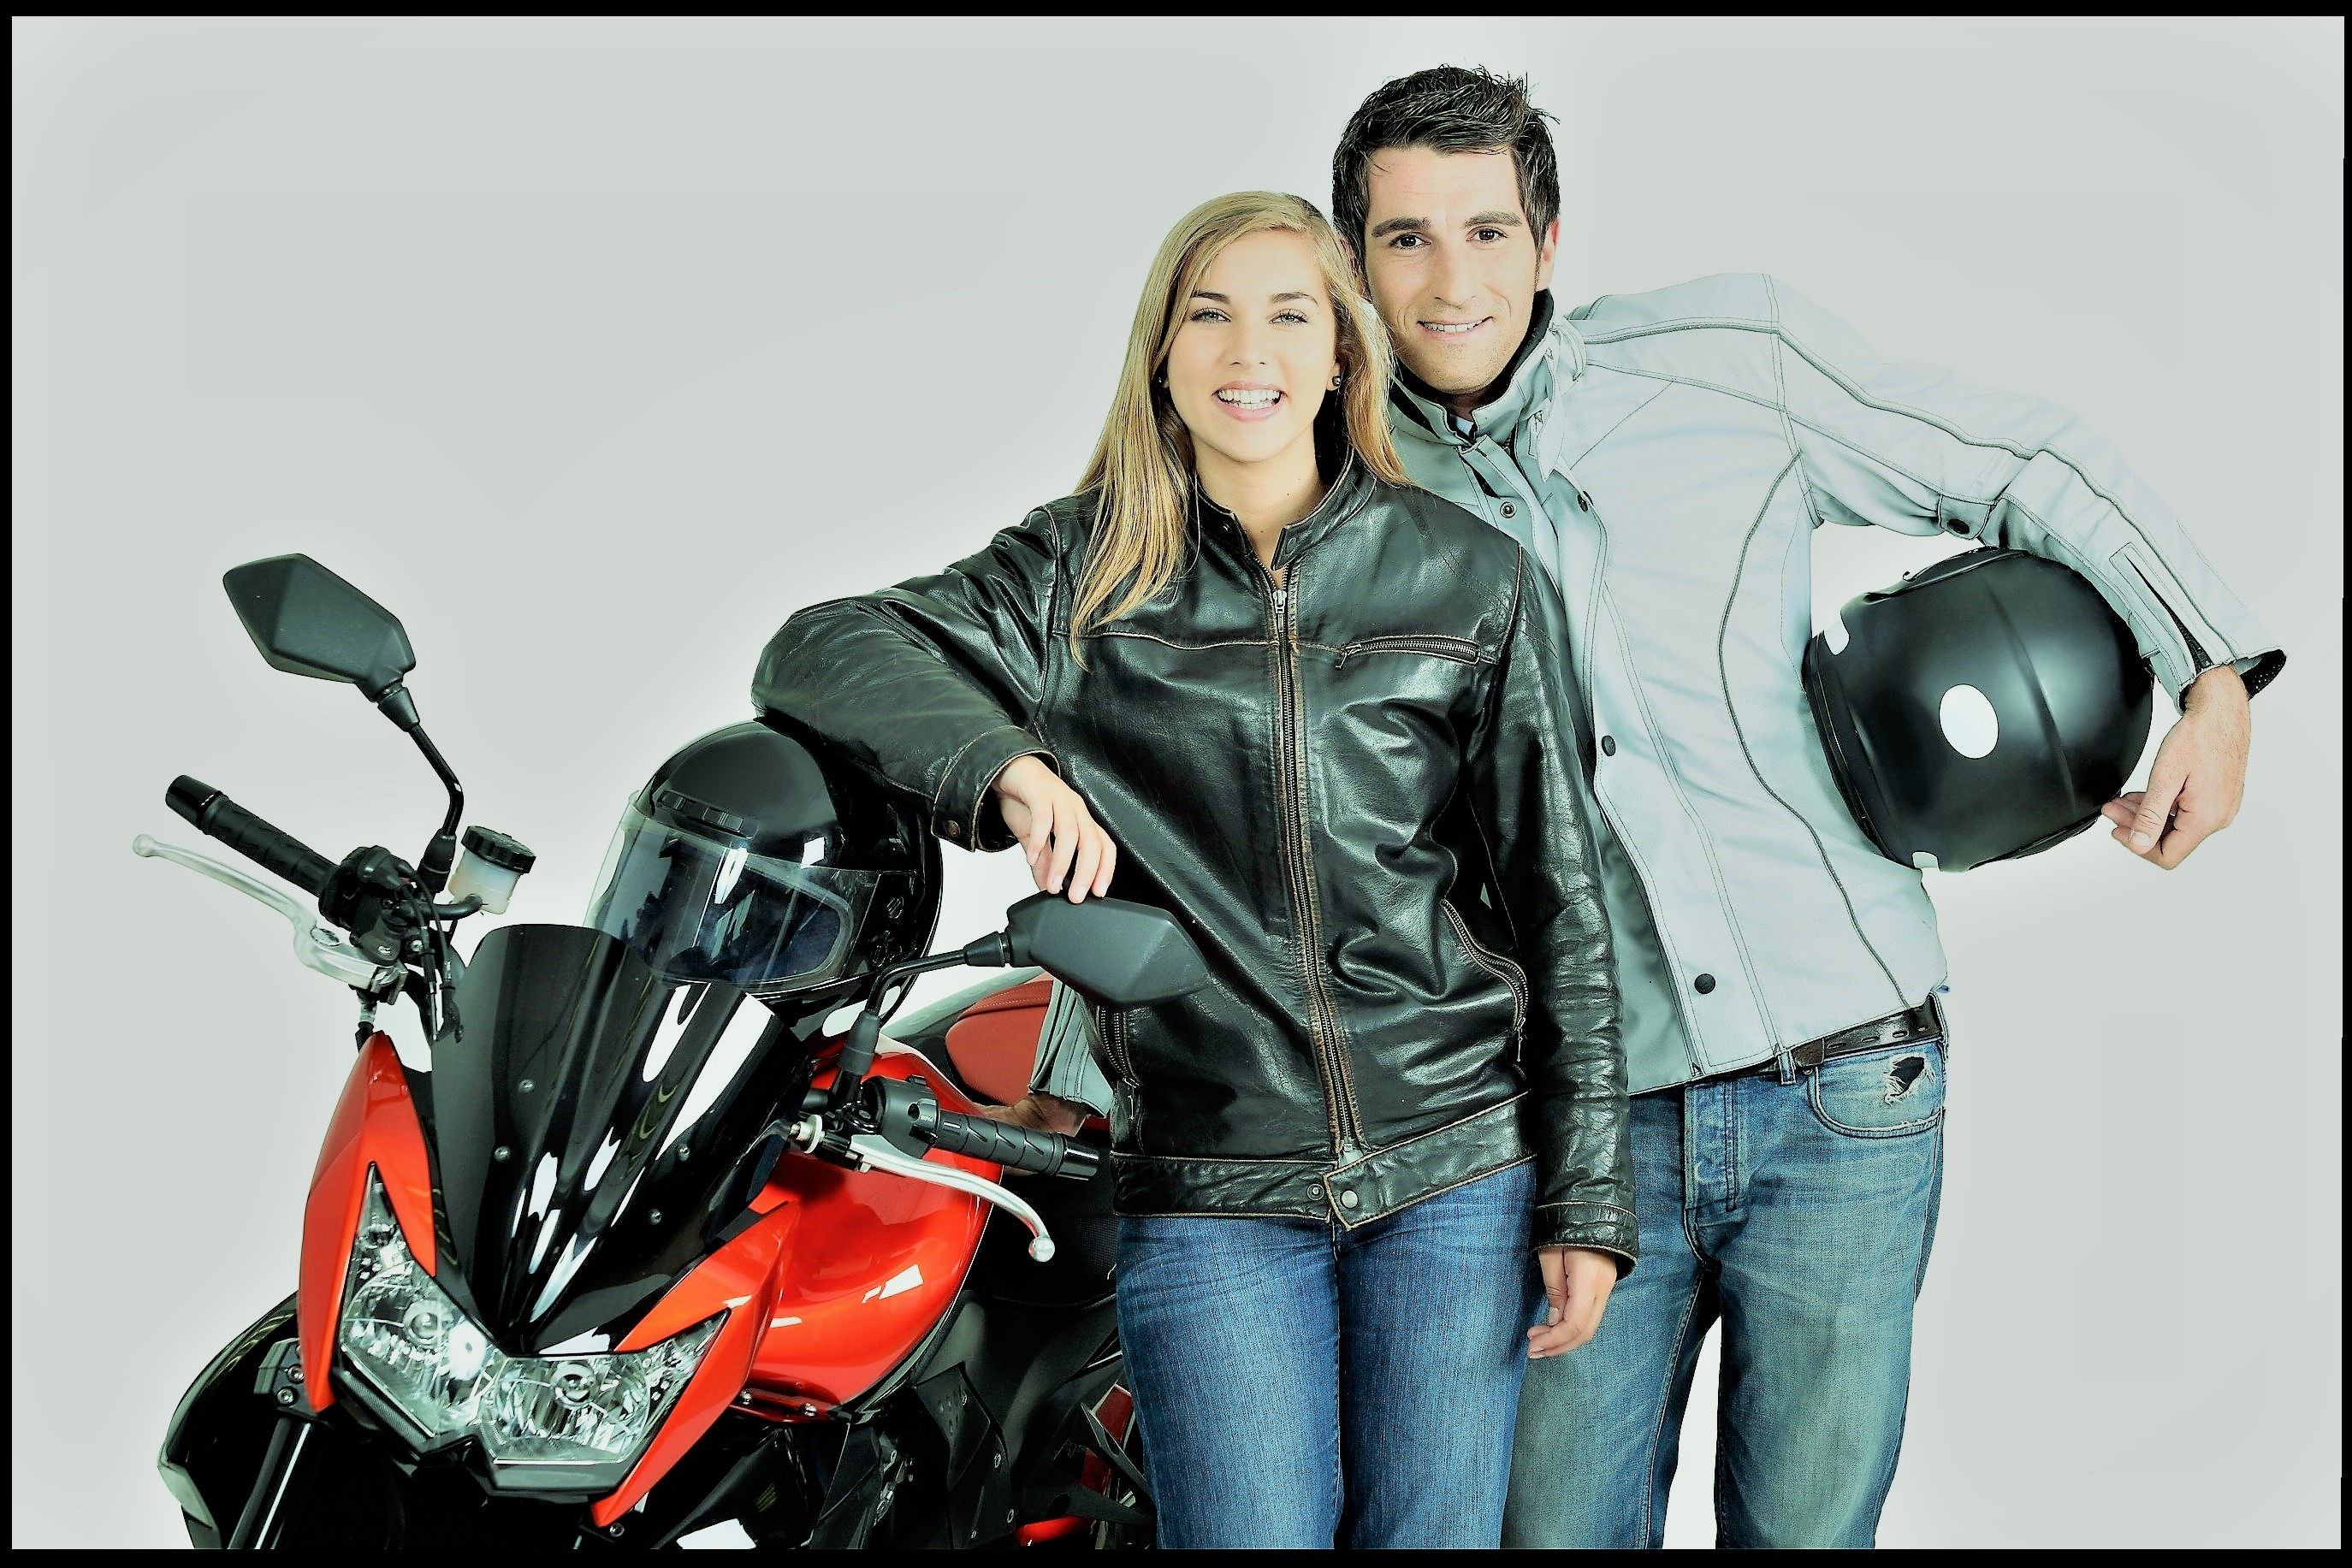 motorcycle-1829461 (3)